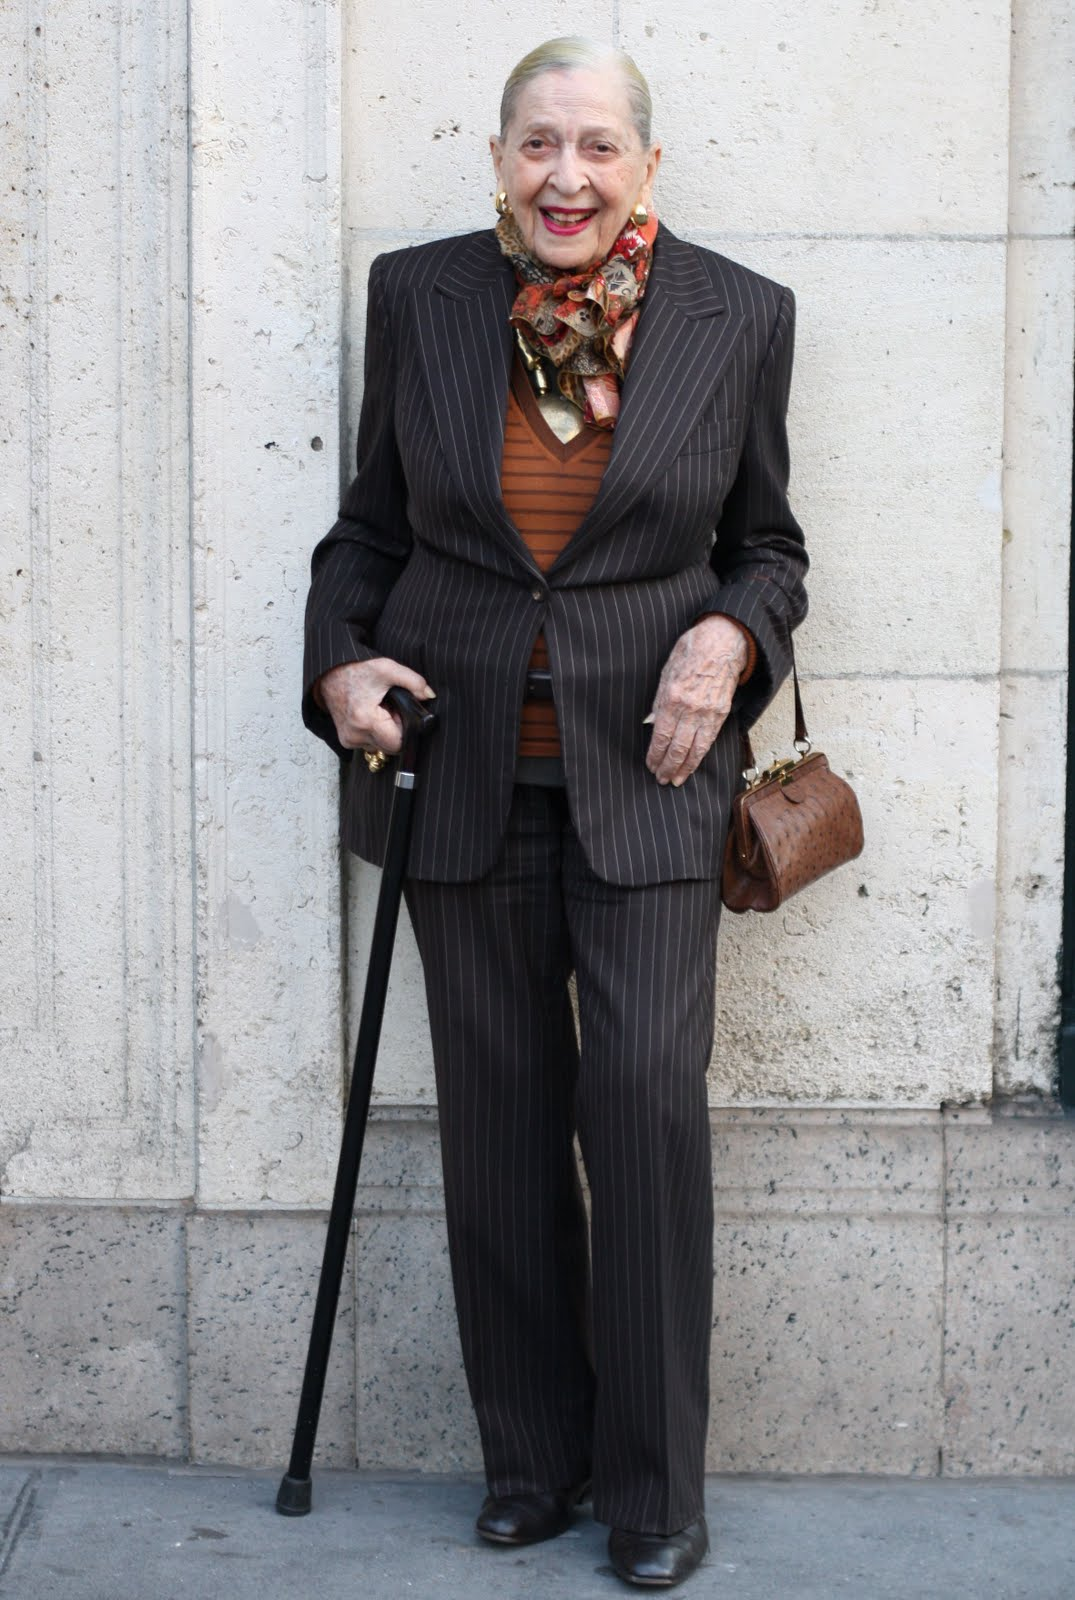 The Top Ten Ways to Stay Stylish and Look Great at 98 ...